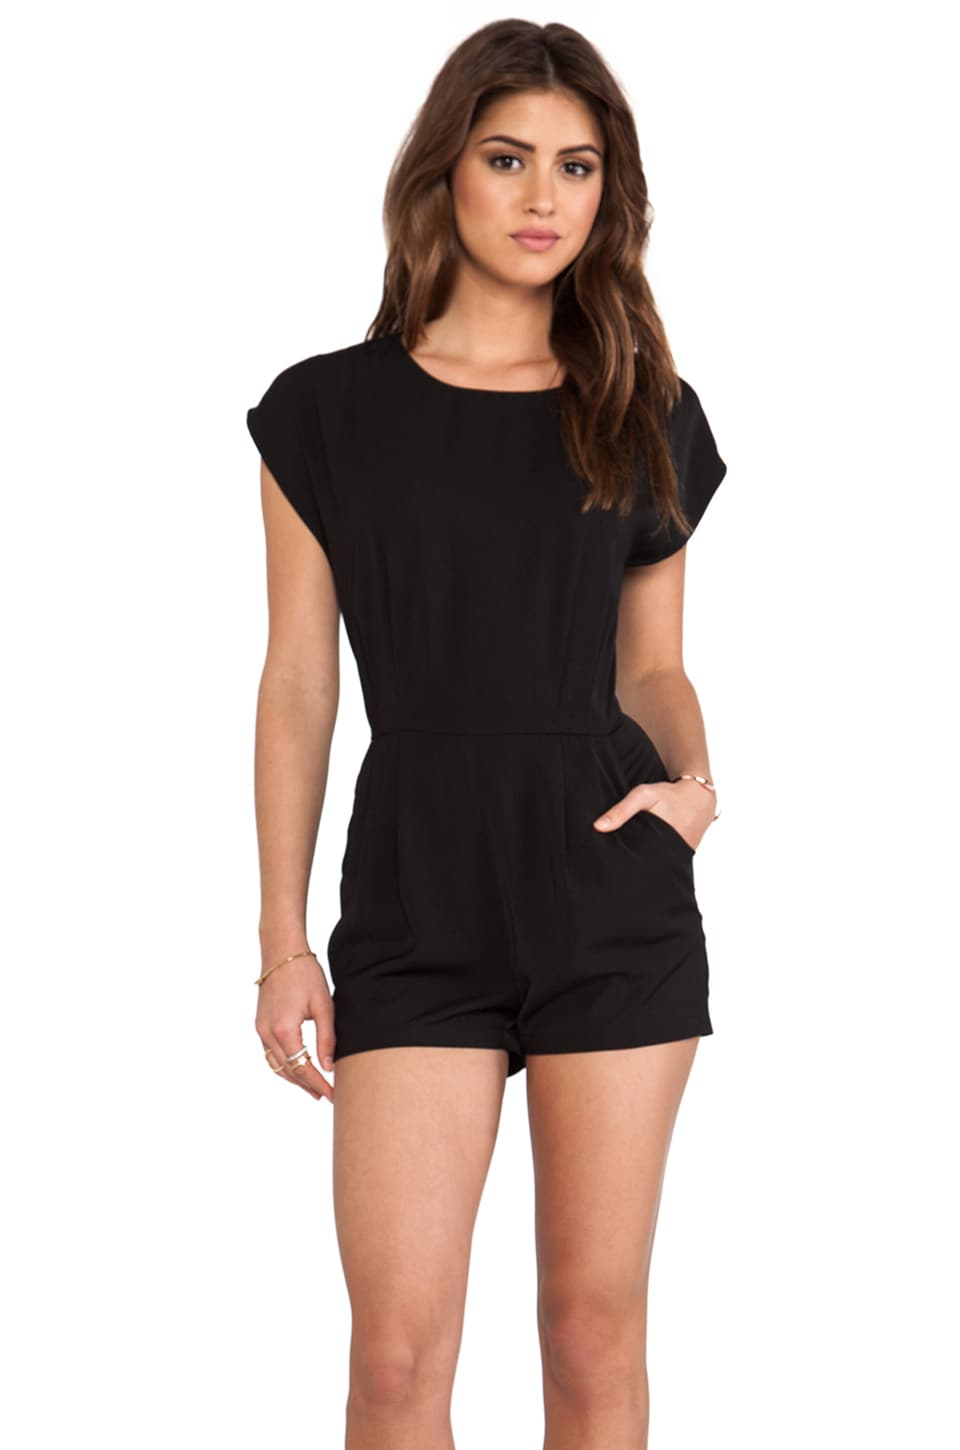 BLAQUE LABEL Romper in Black